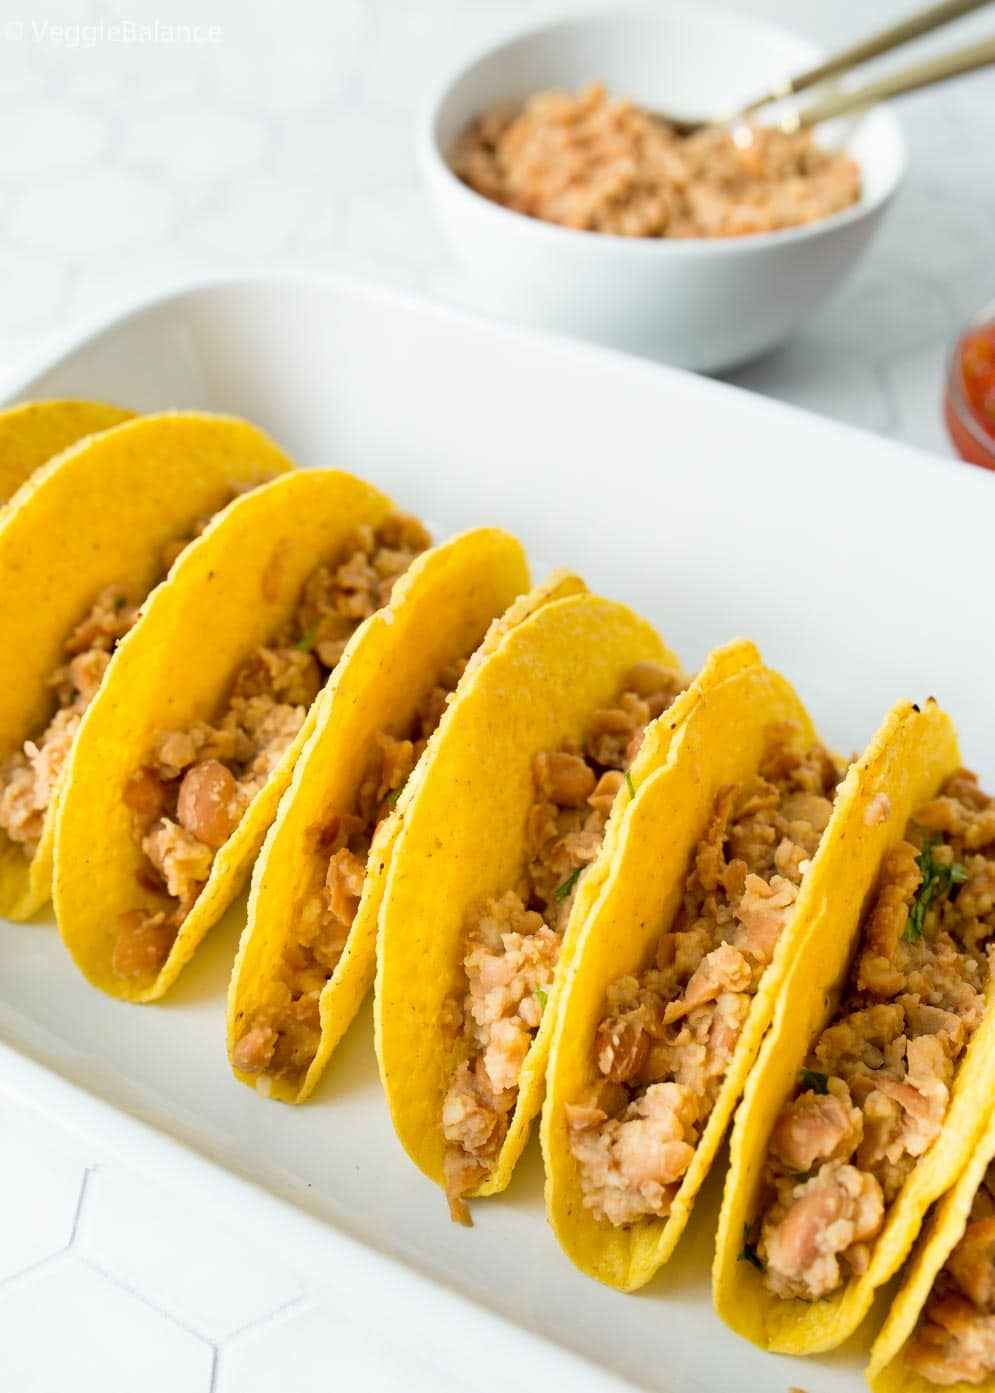 Taco shells stuffed with refried beans as first layer of vegetarian tacos